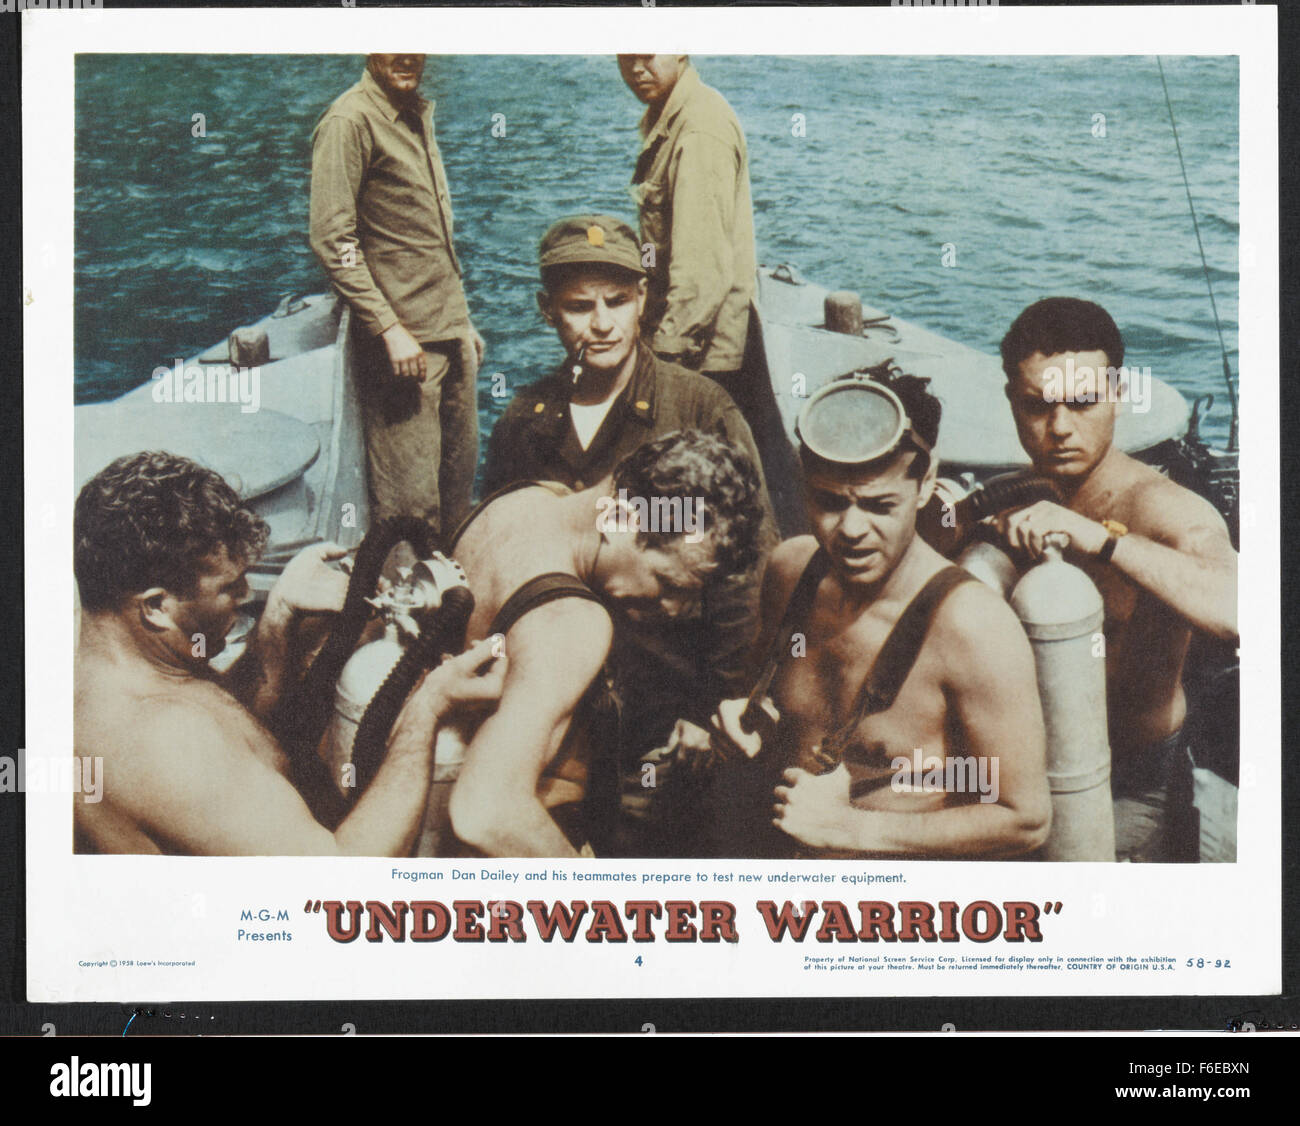 Warriors Of The Dawn Korean Movie Download: Release Date: February 14, 1958. Movie Title: Underwater